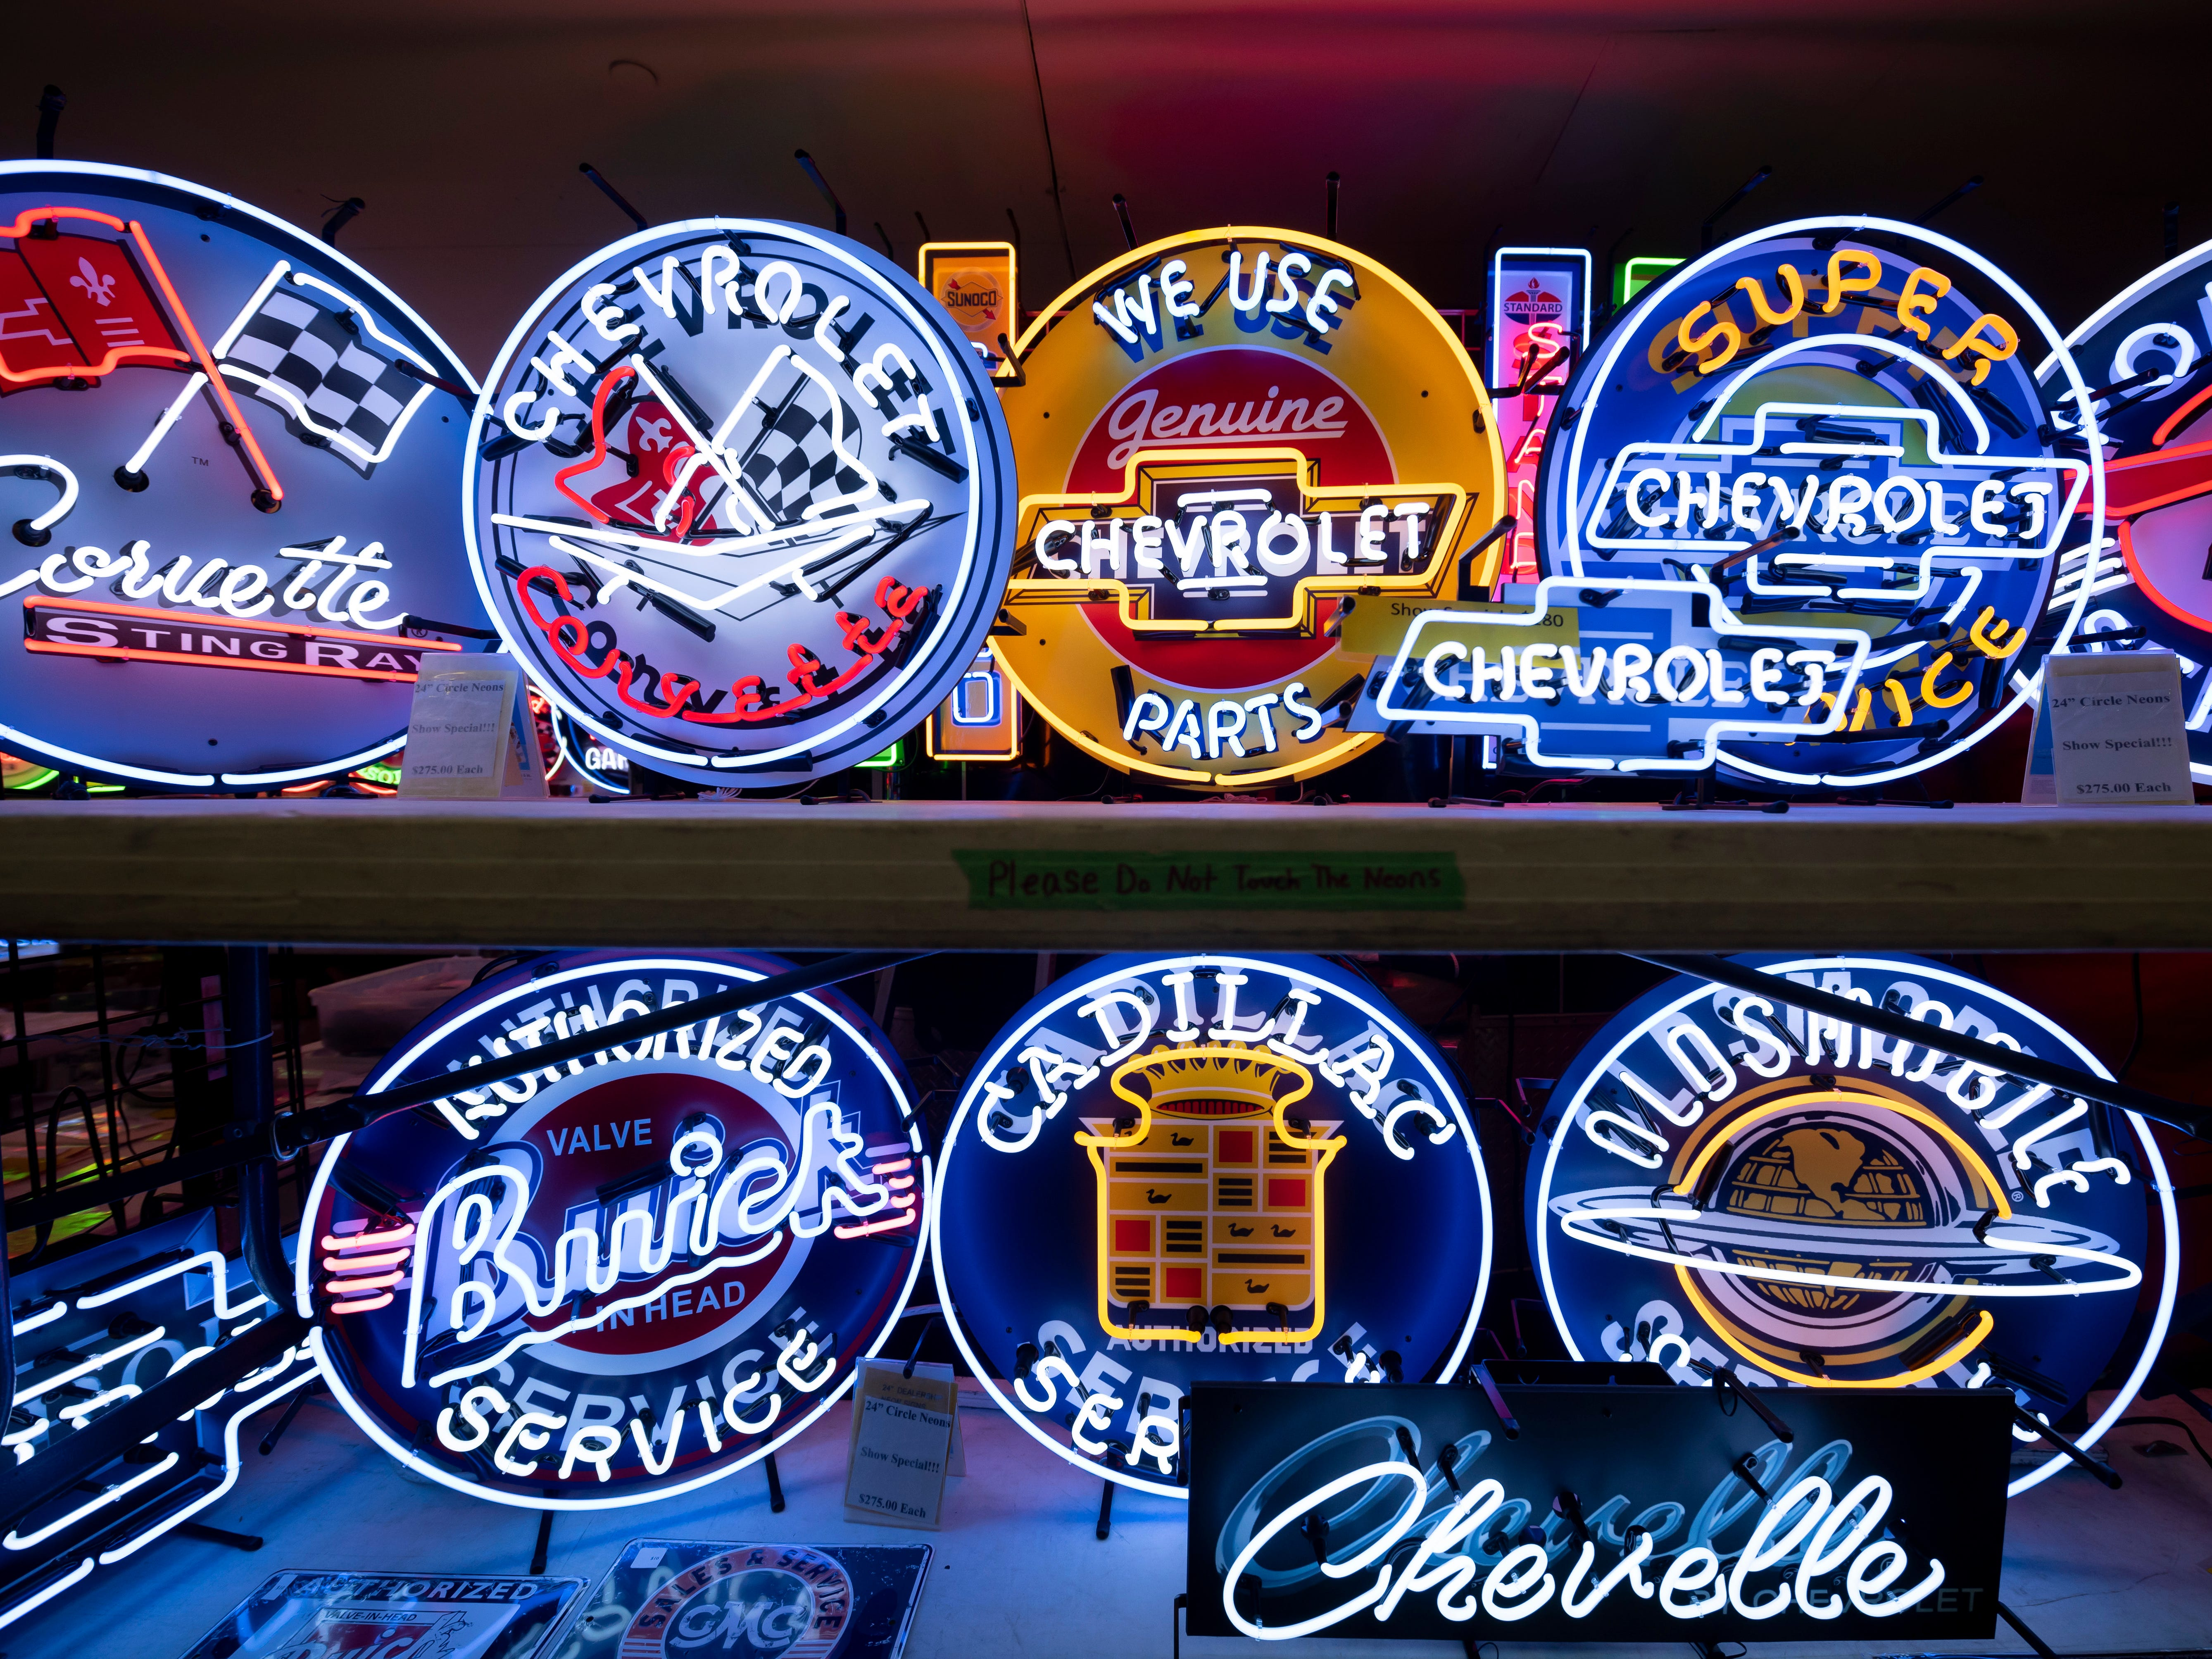 Neon signs are among the items for sale at Detroit Autorama.